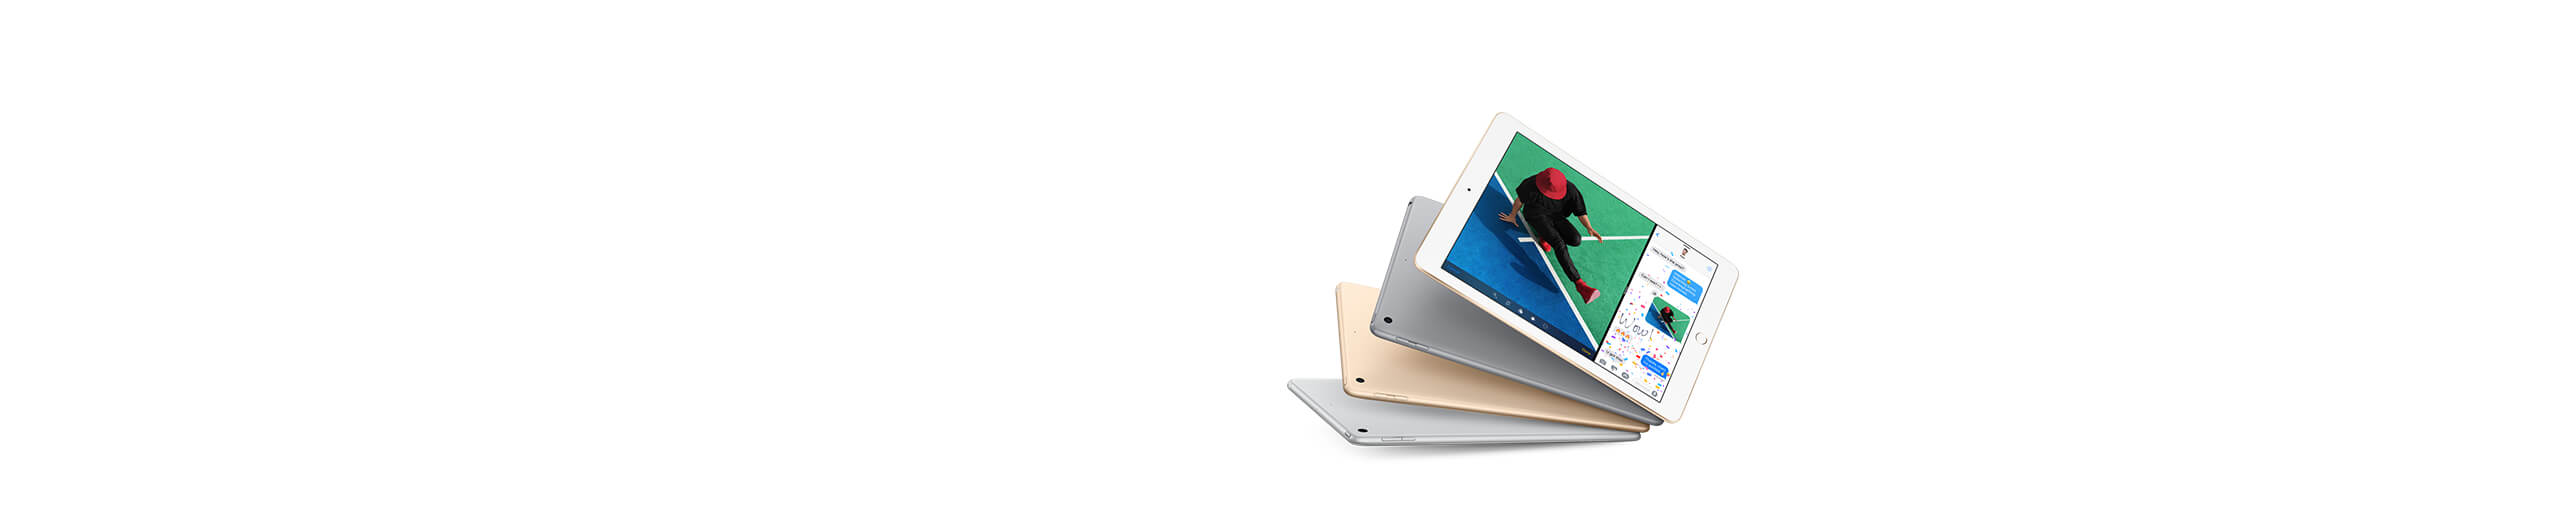 Apple iPad banner